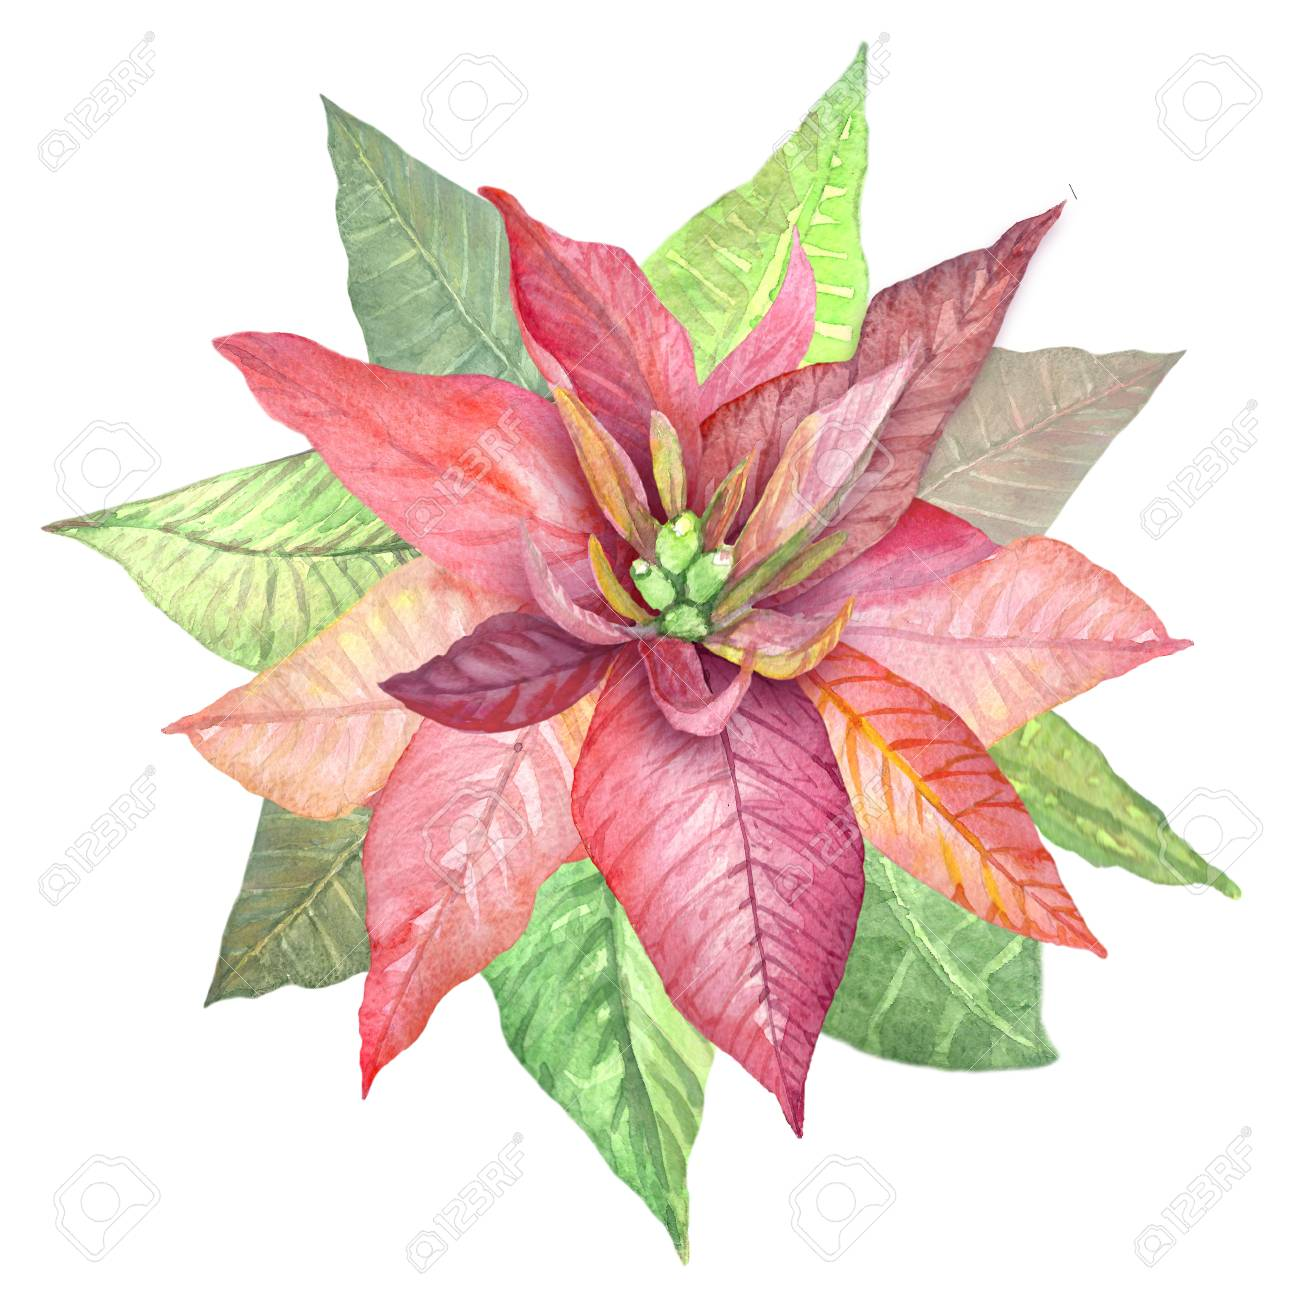 Watercolor Flowers Poinsettia Illustration Of Botanical Plants Stock Photo Picture And Royalty Free Image Image 93886987